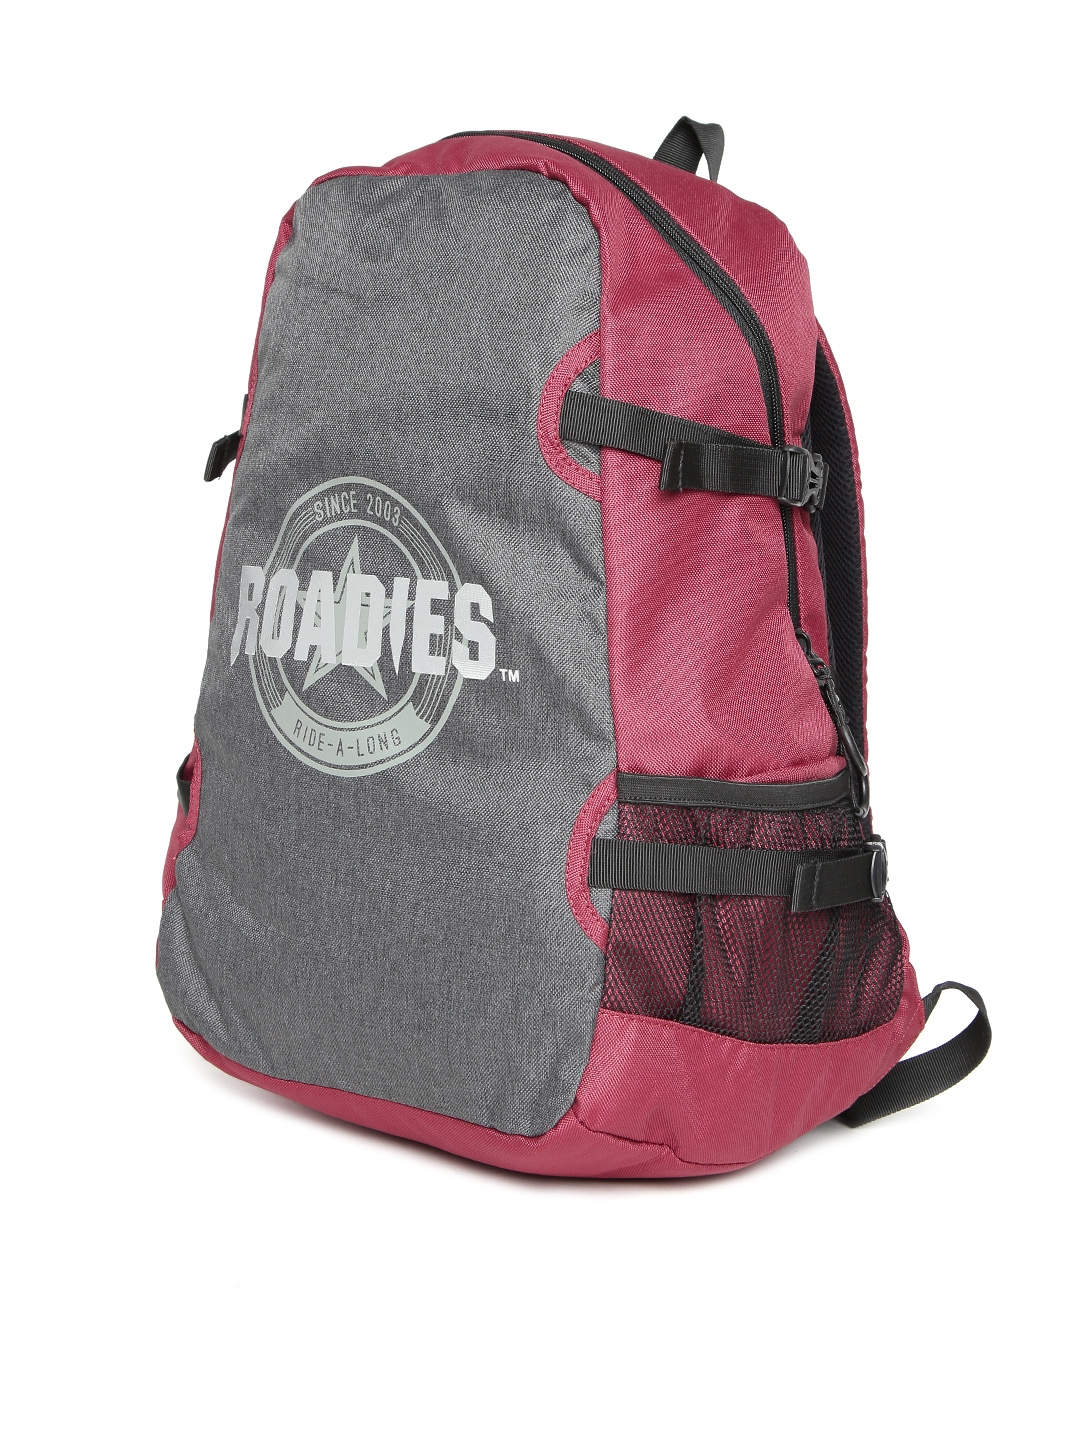 Roadies by THe VerTicaL Unisex Charcoal Grey   Maroon Printed Laptop  Backpack 8c78b0fe9f29a